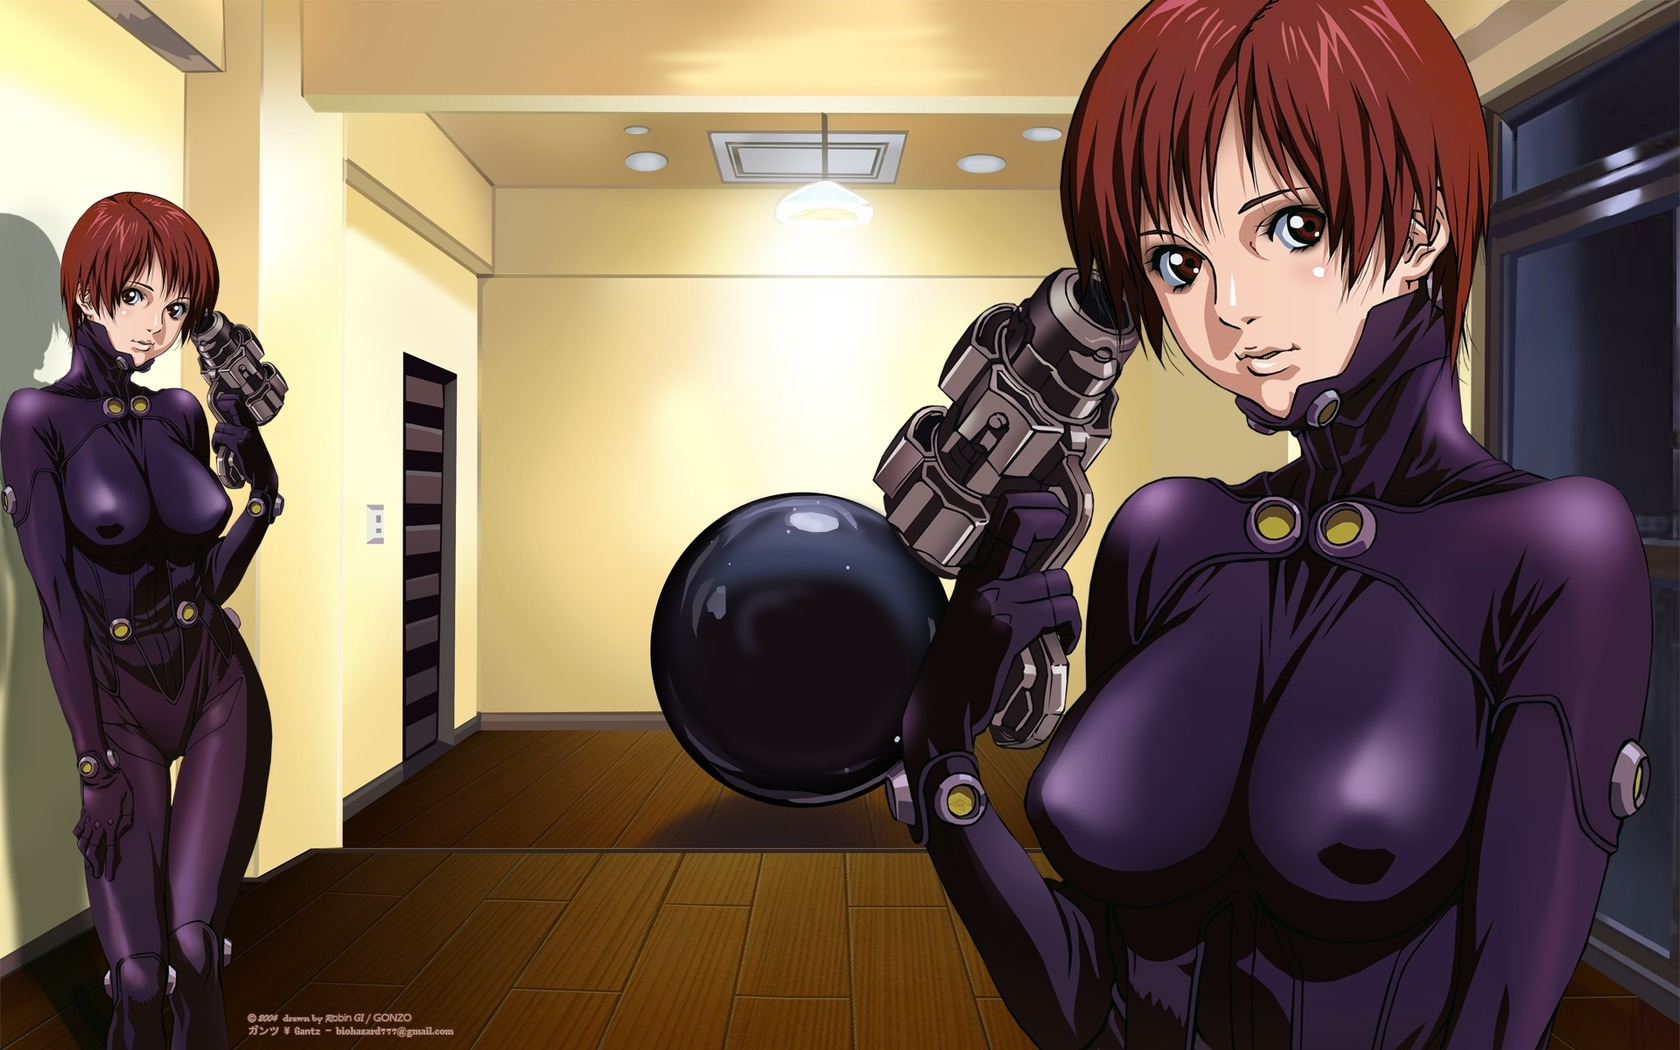 Gantz Anime Wallpaper # 5